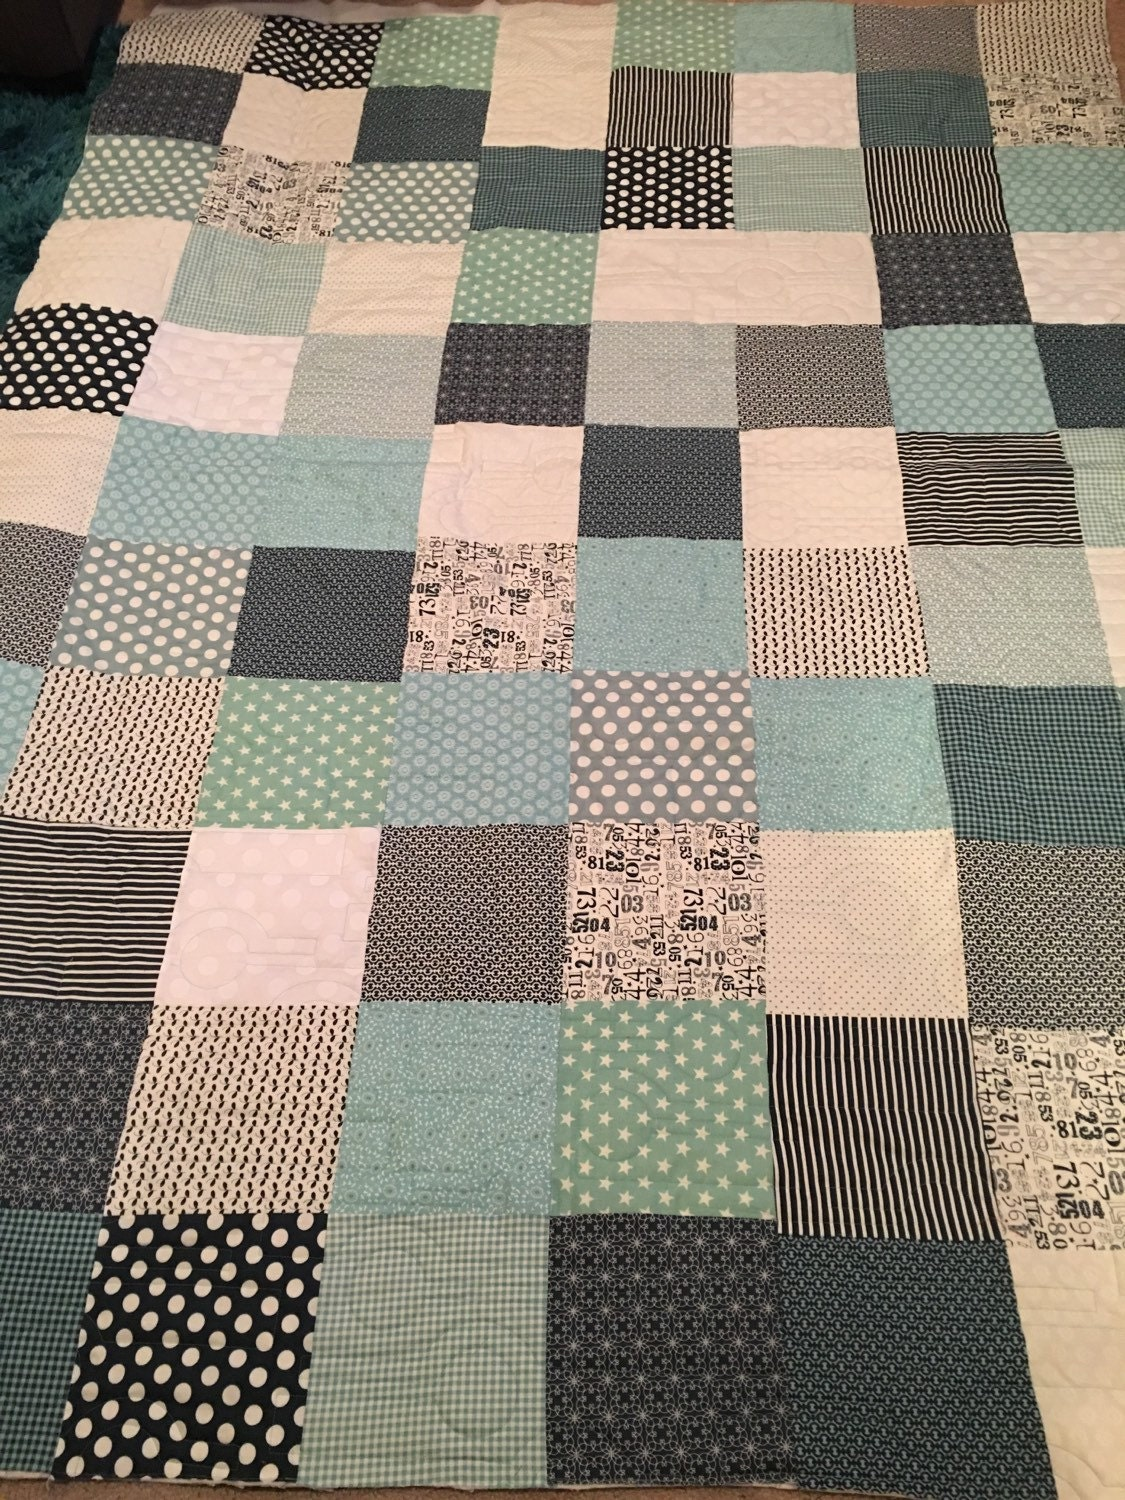 handmade quilts for sale size 1 quilts sale new quilt handmade quilt 1000